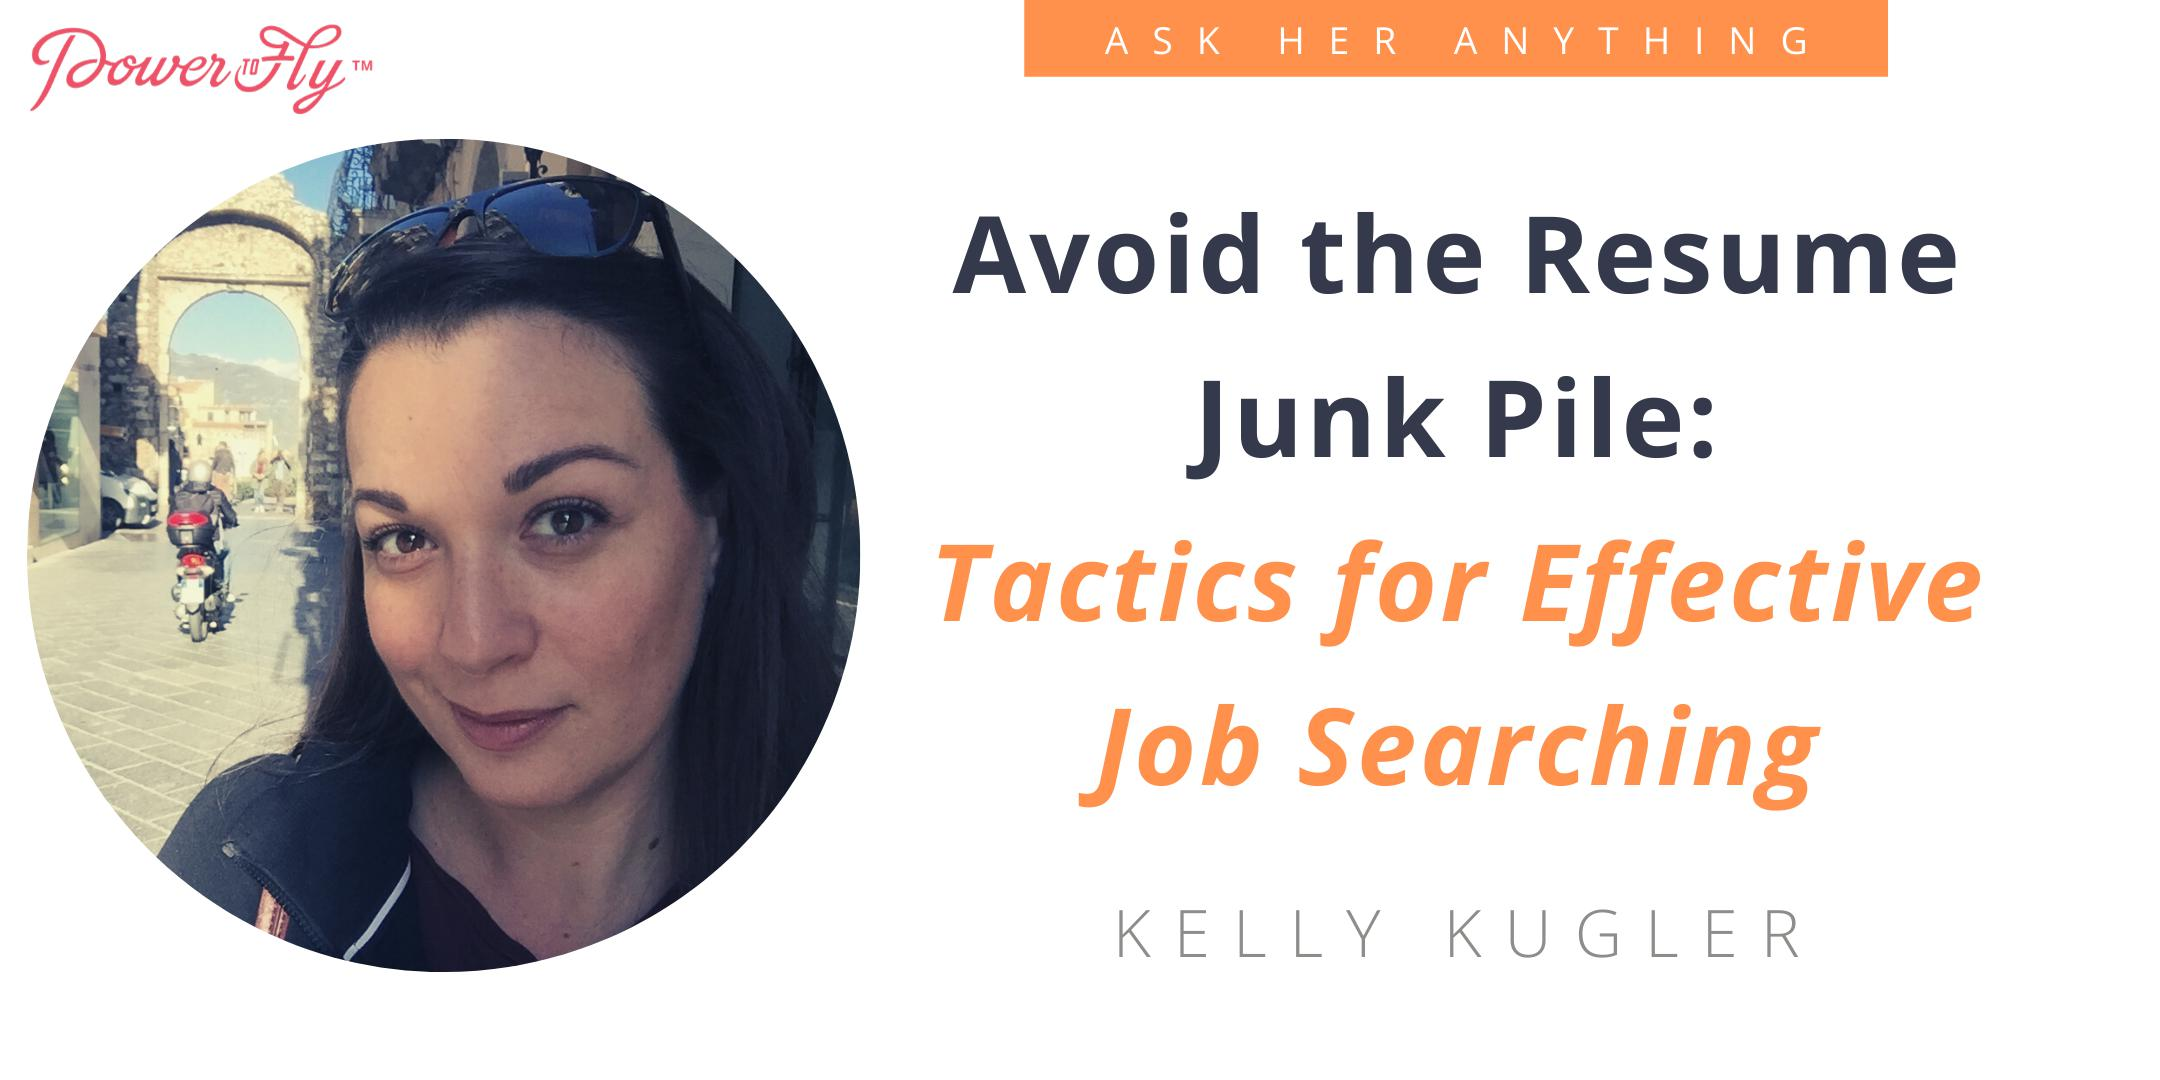 Avoid the Resume Junk Pile: Tactics for Effective Job Searching